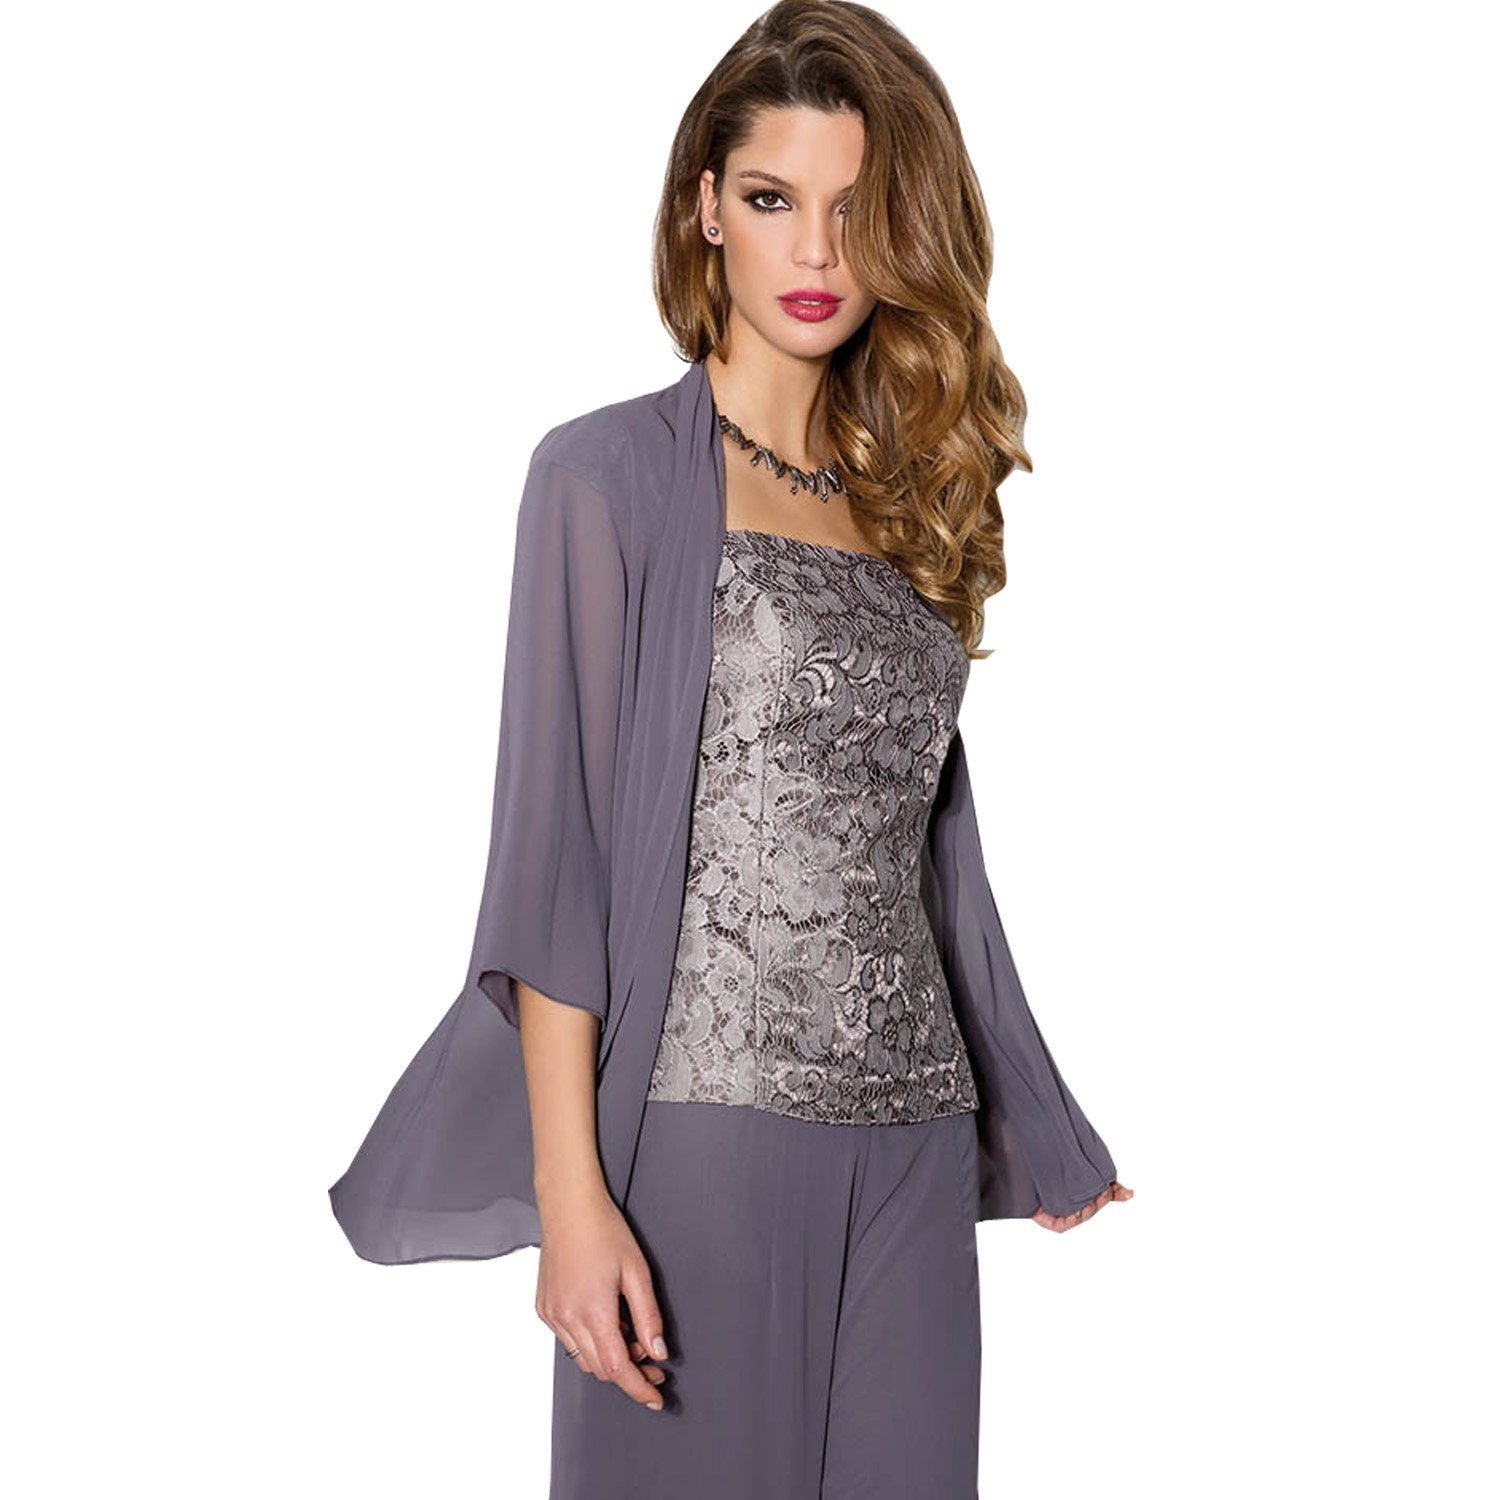 Newdeve Purple Chiffon Lace 3 Pieces Mother Of The Bride Pantsuits